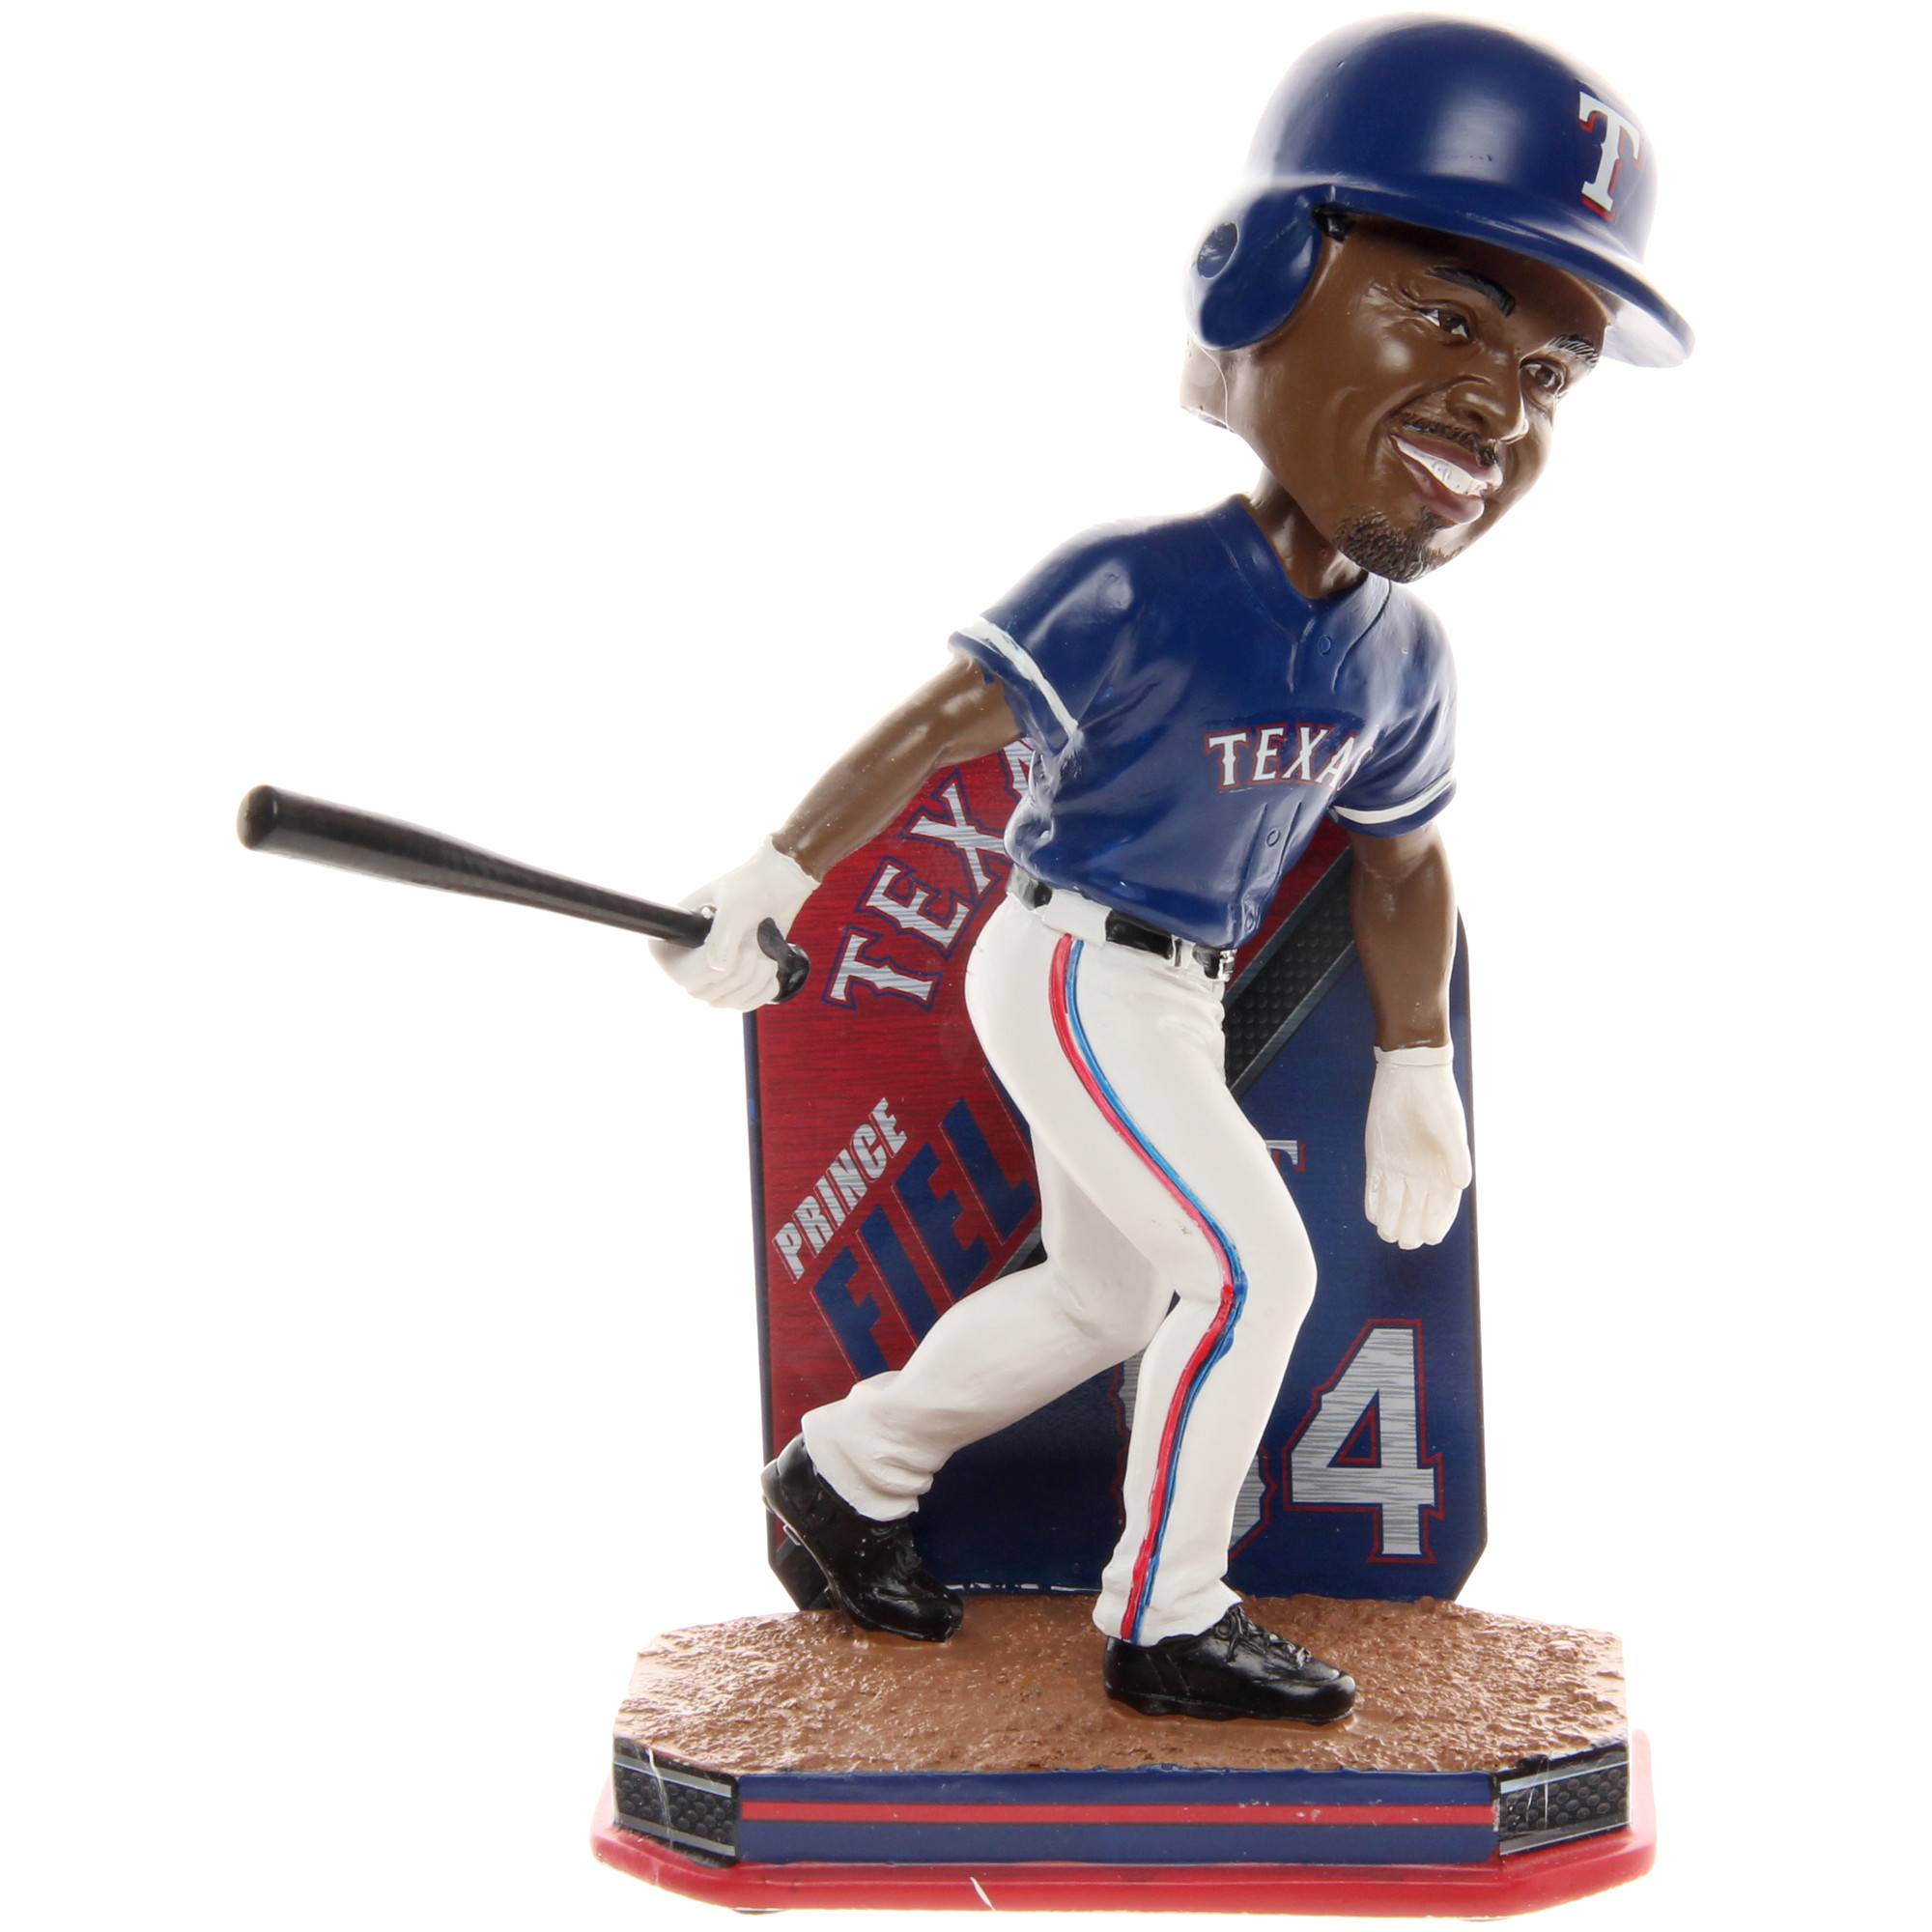 Prince Fielder Texas Rangers Name & Number Bobblehead - No Size